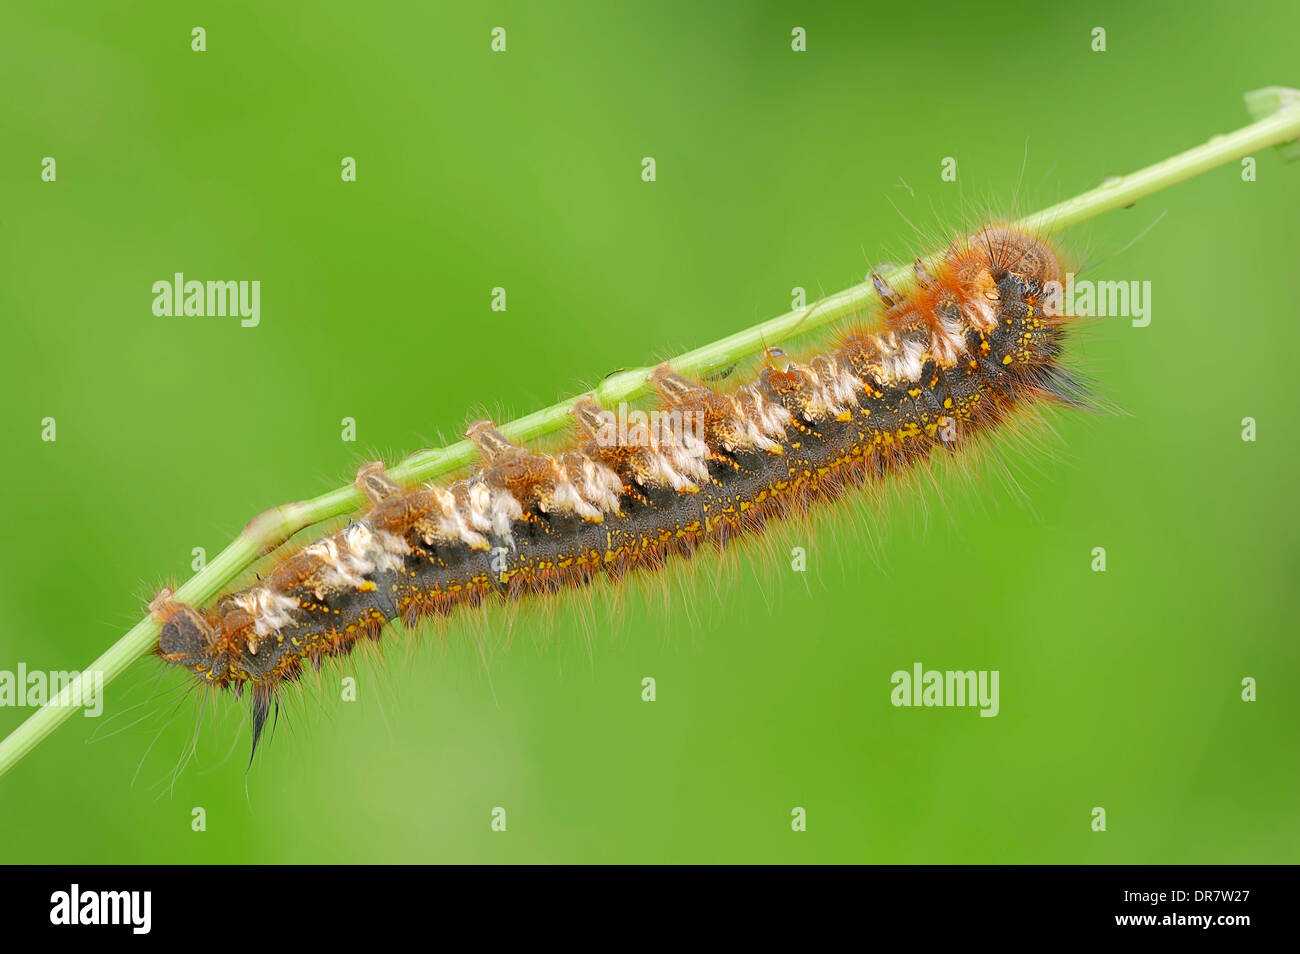 Caterpillar, The Drinker (Euthrix potatoria), North Rhine-Westphalia, Germany - Stock Image